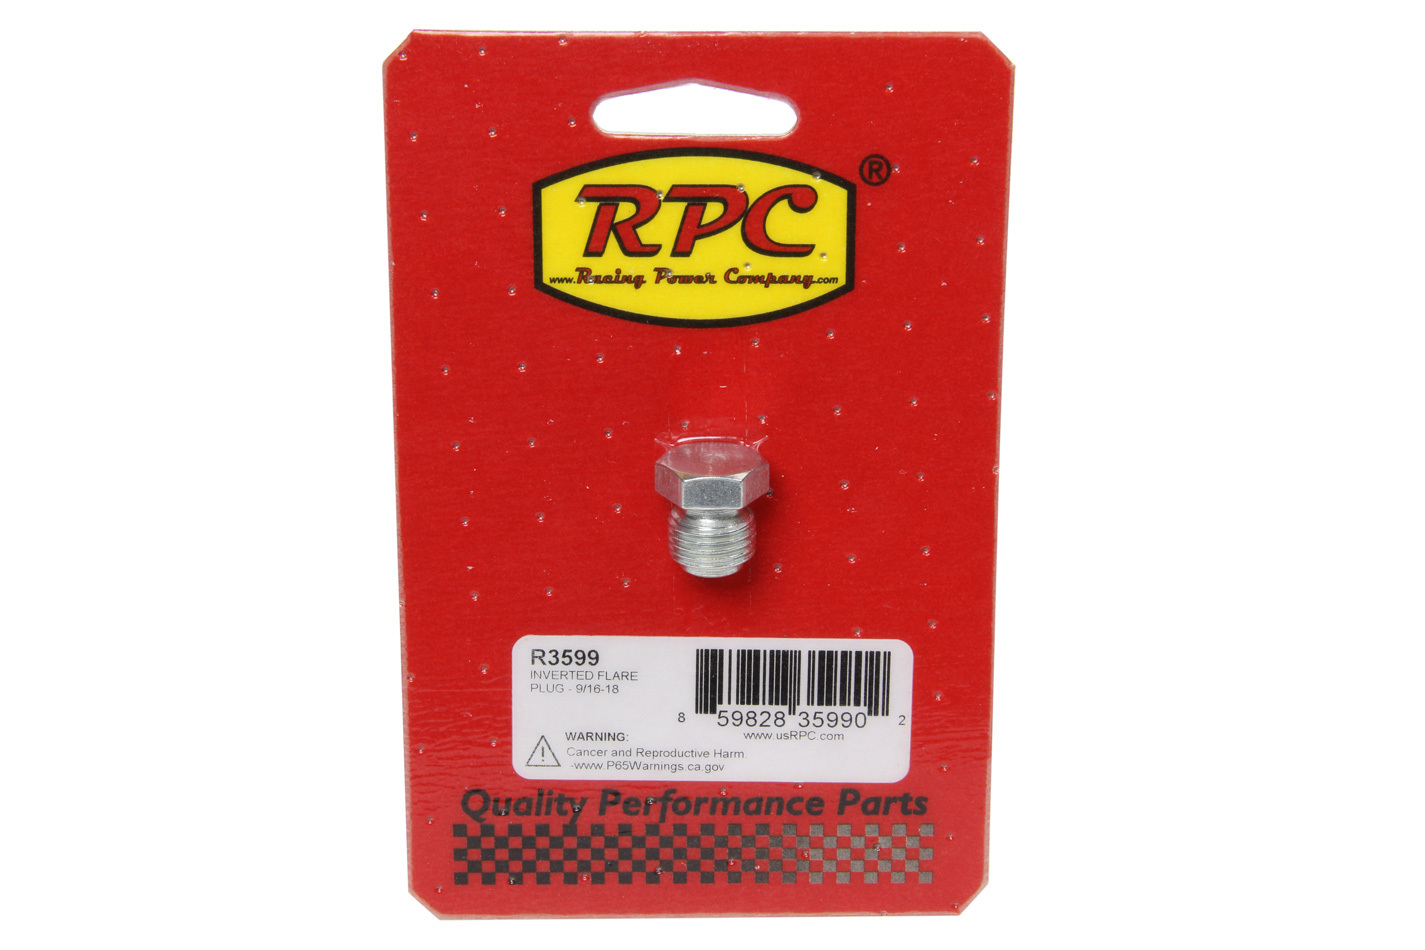 Racing Power Company R3599 Fitting, Plug, 9/16-18 in Inverted Flare Male, Hex Head, Steel, Zinc Oxide, Each